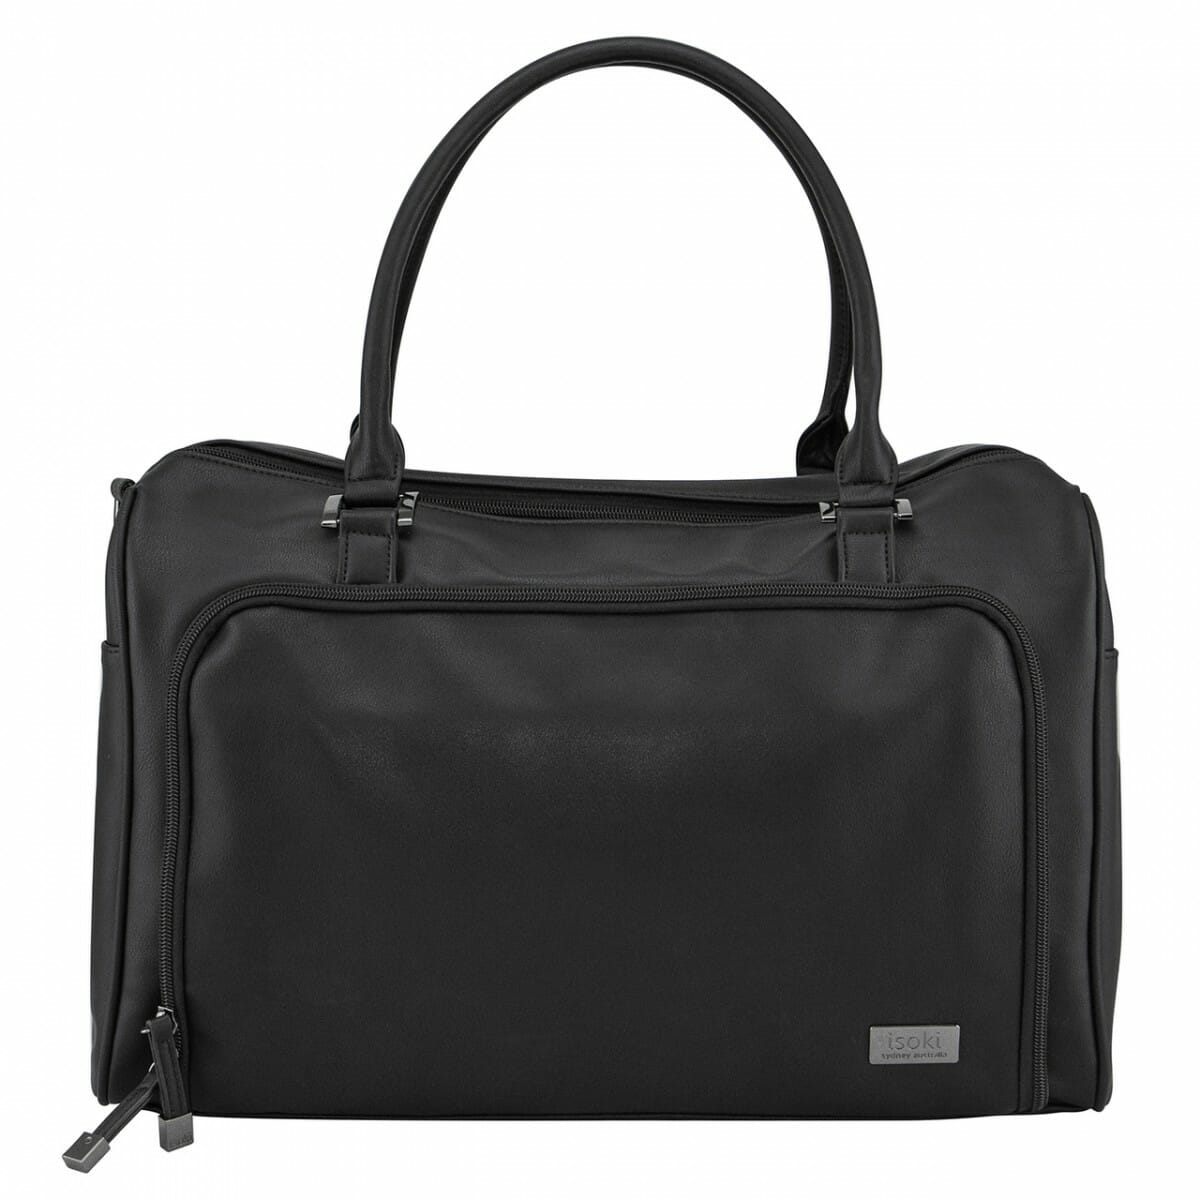 Isoki Double Zip Satchel Onyx